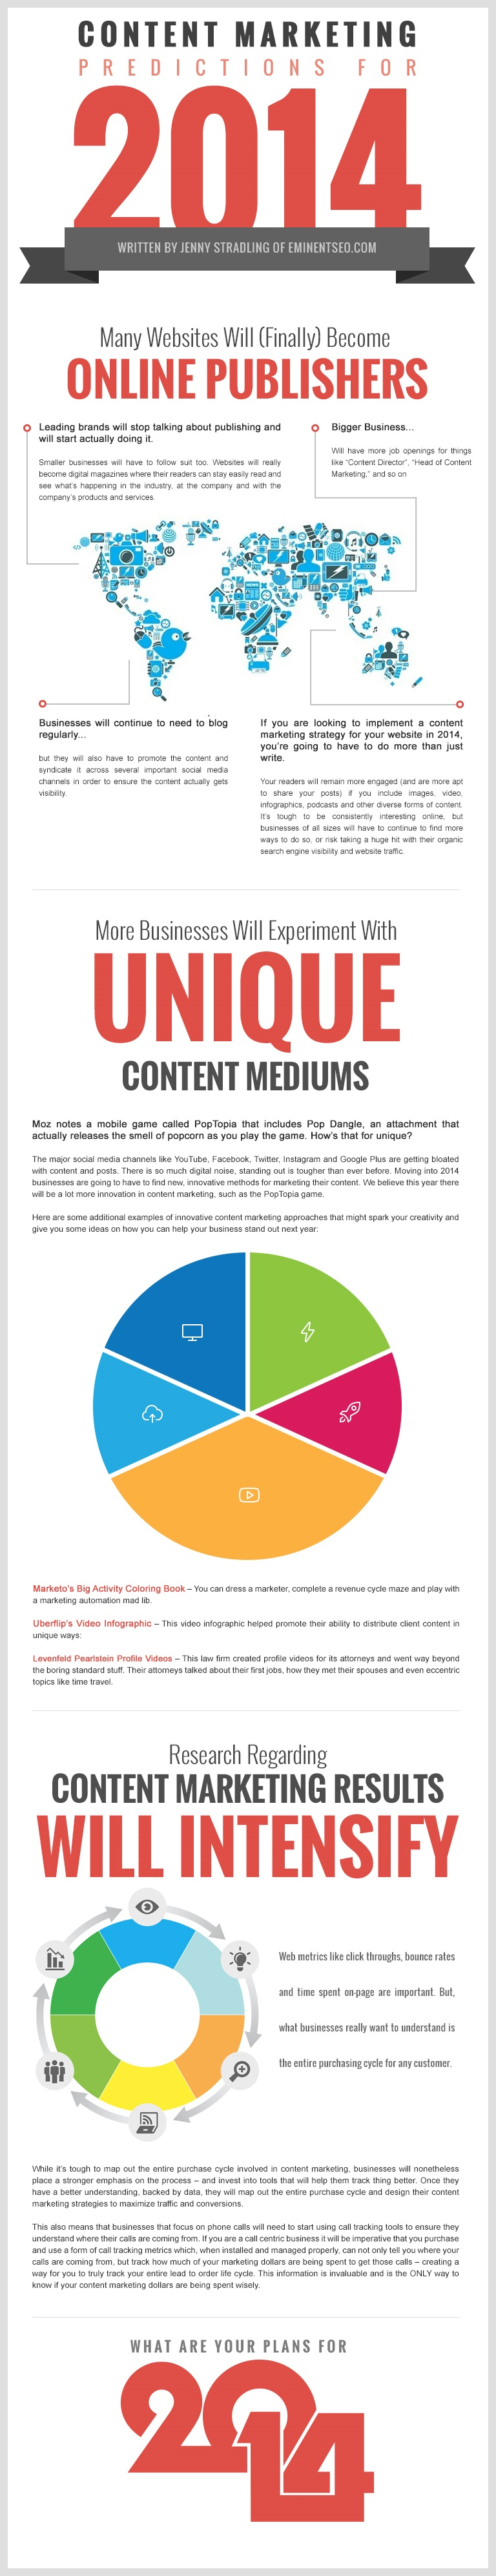 Check Out Our Content Marketing Predictions For 2014 Blog Post